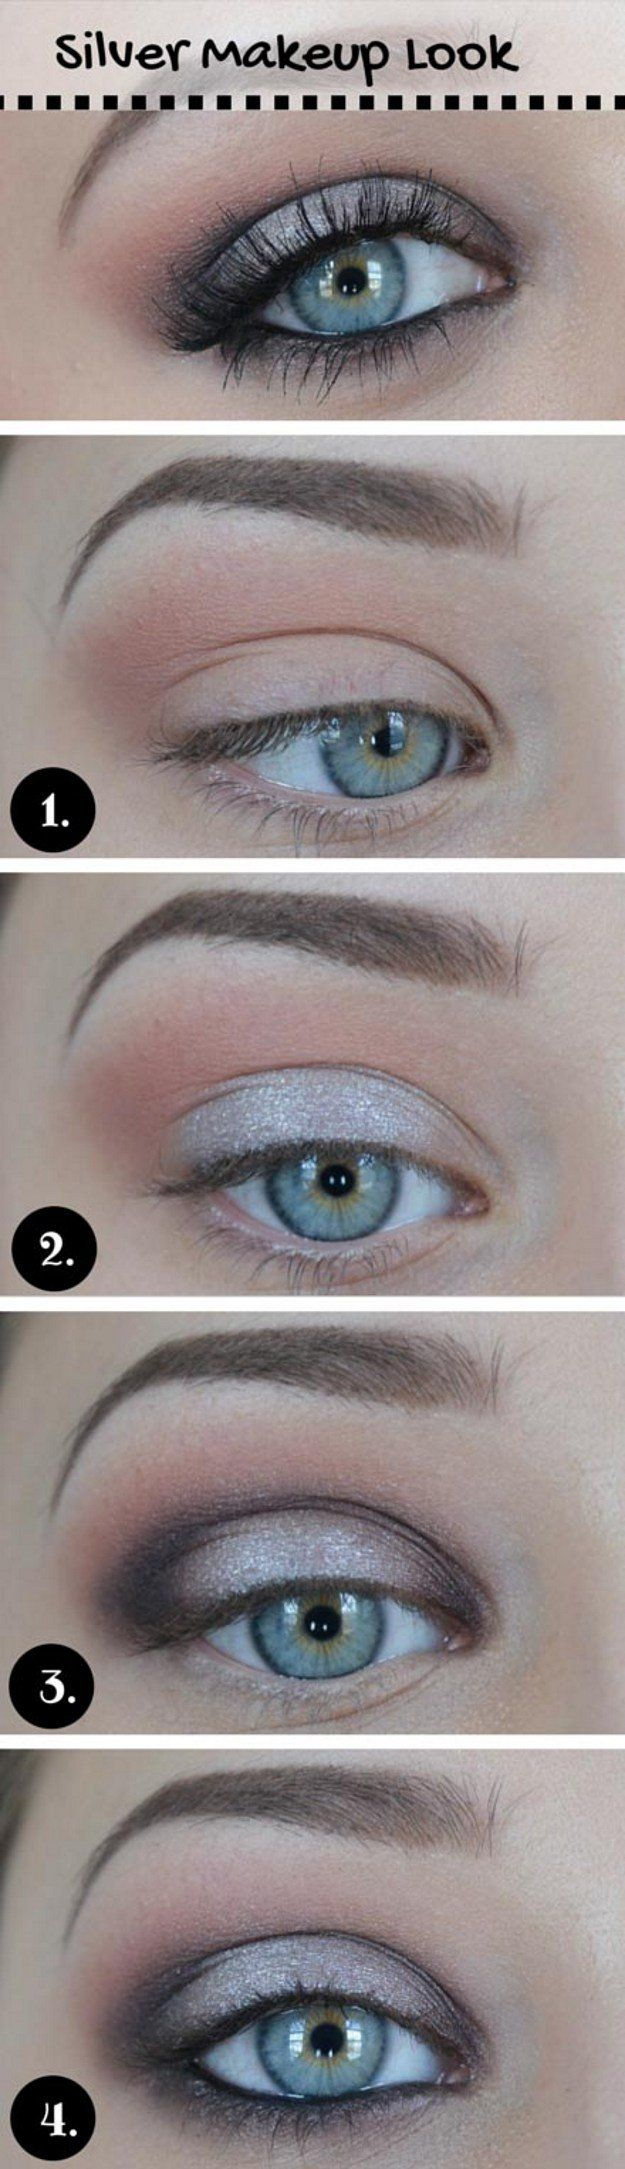 How to Do Silver Eye Makeup | Metallic Eyes